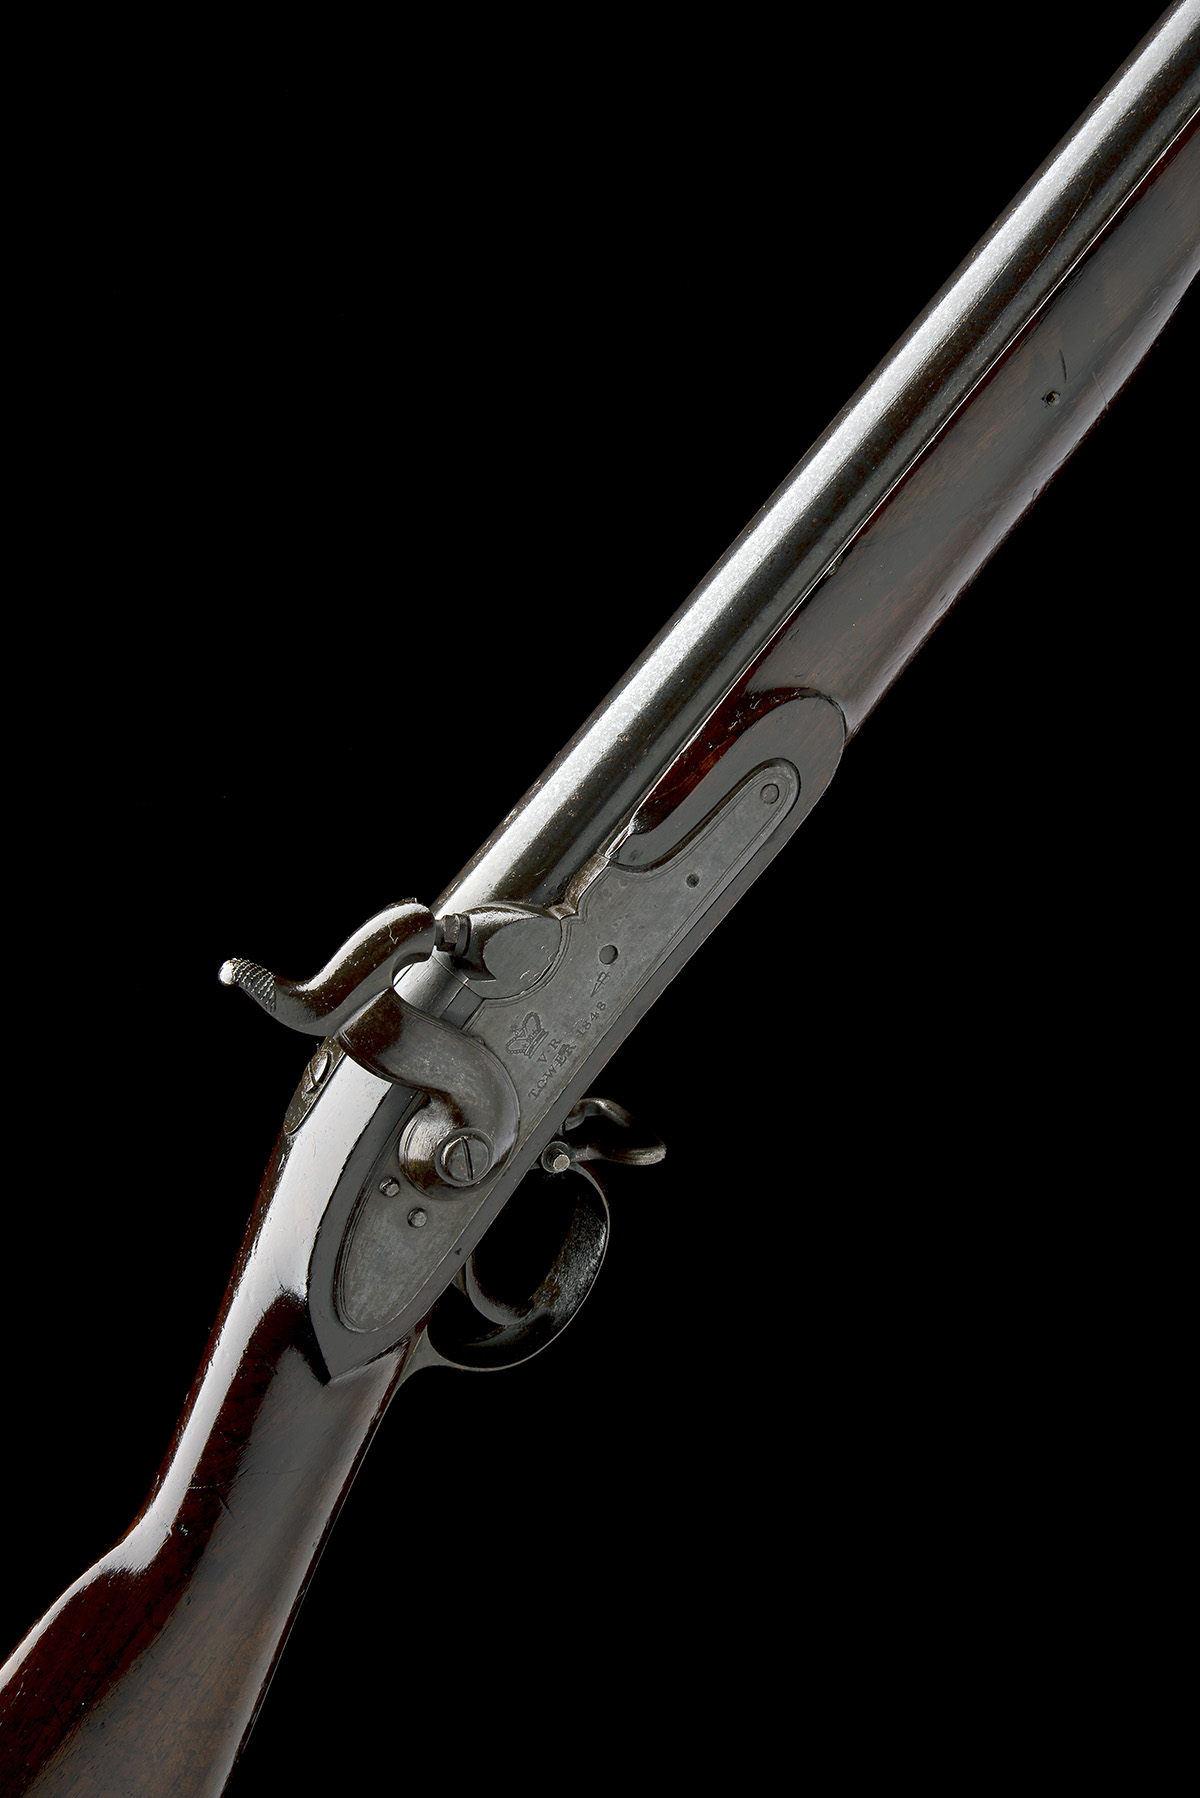 TOWER ARMOURIES, LONDON A .760 PERCUSSION MUSKET, MODEL 'PATTERN 1839', no visible serial number,